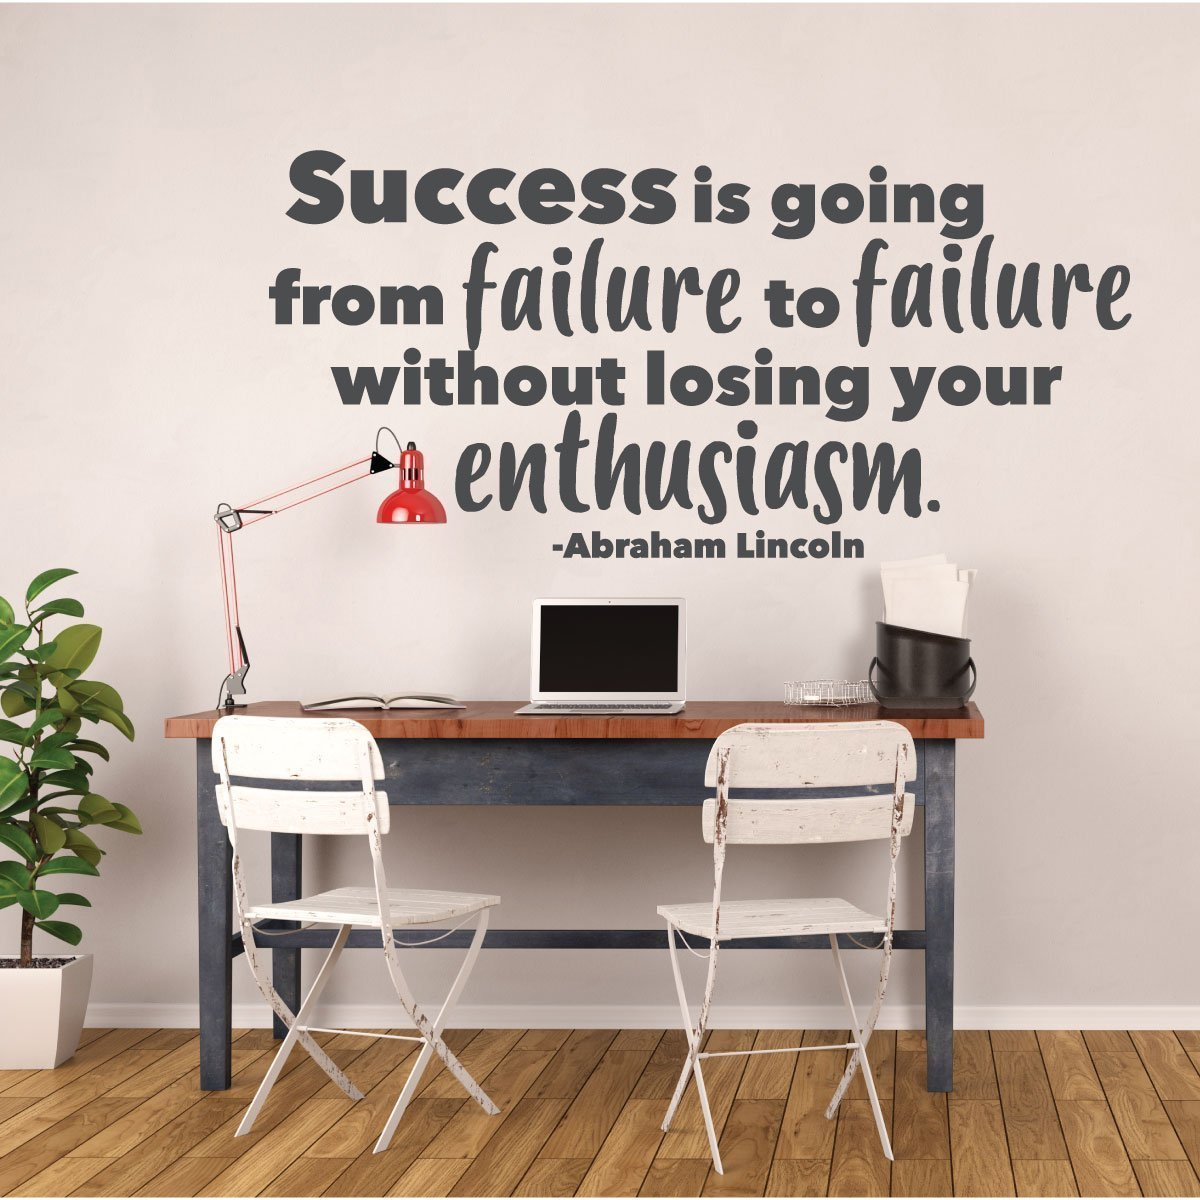 History Classroom Decoration ~ Success quotes for motivation abraham lincoln is